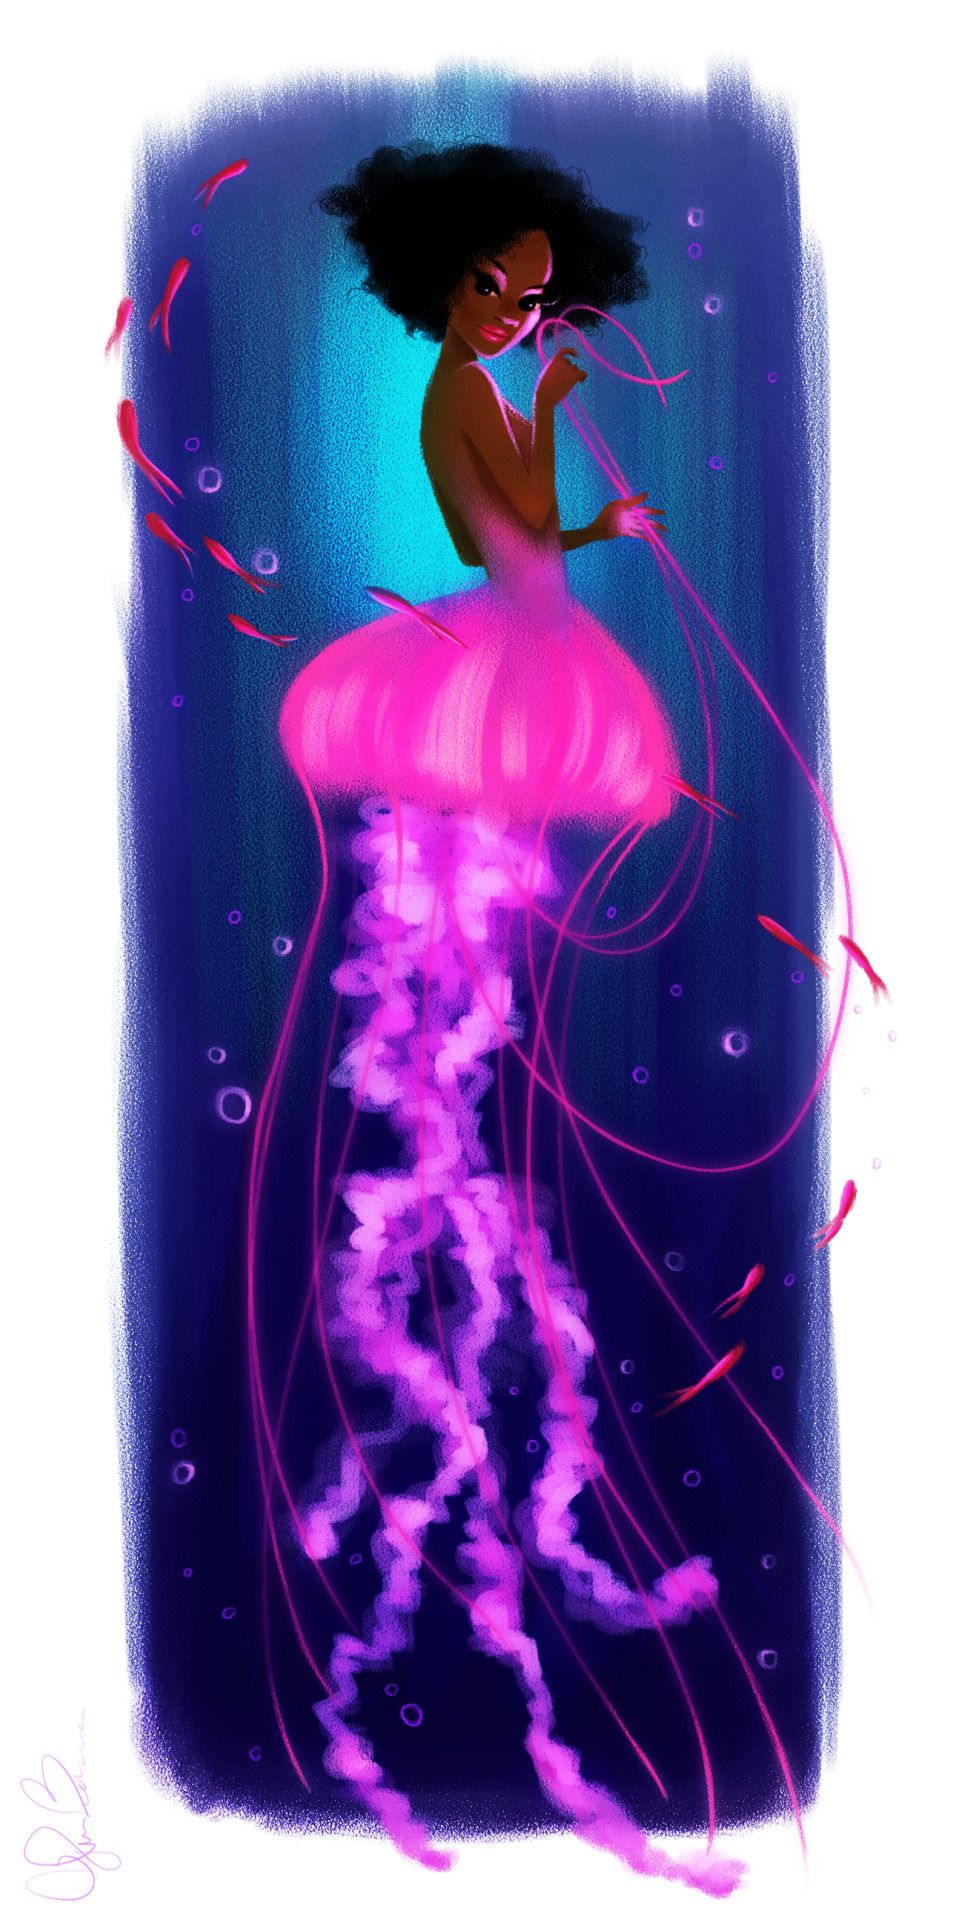 Here is a piece that i love of a mermaidesque jelly fishher upper